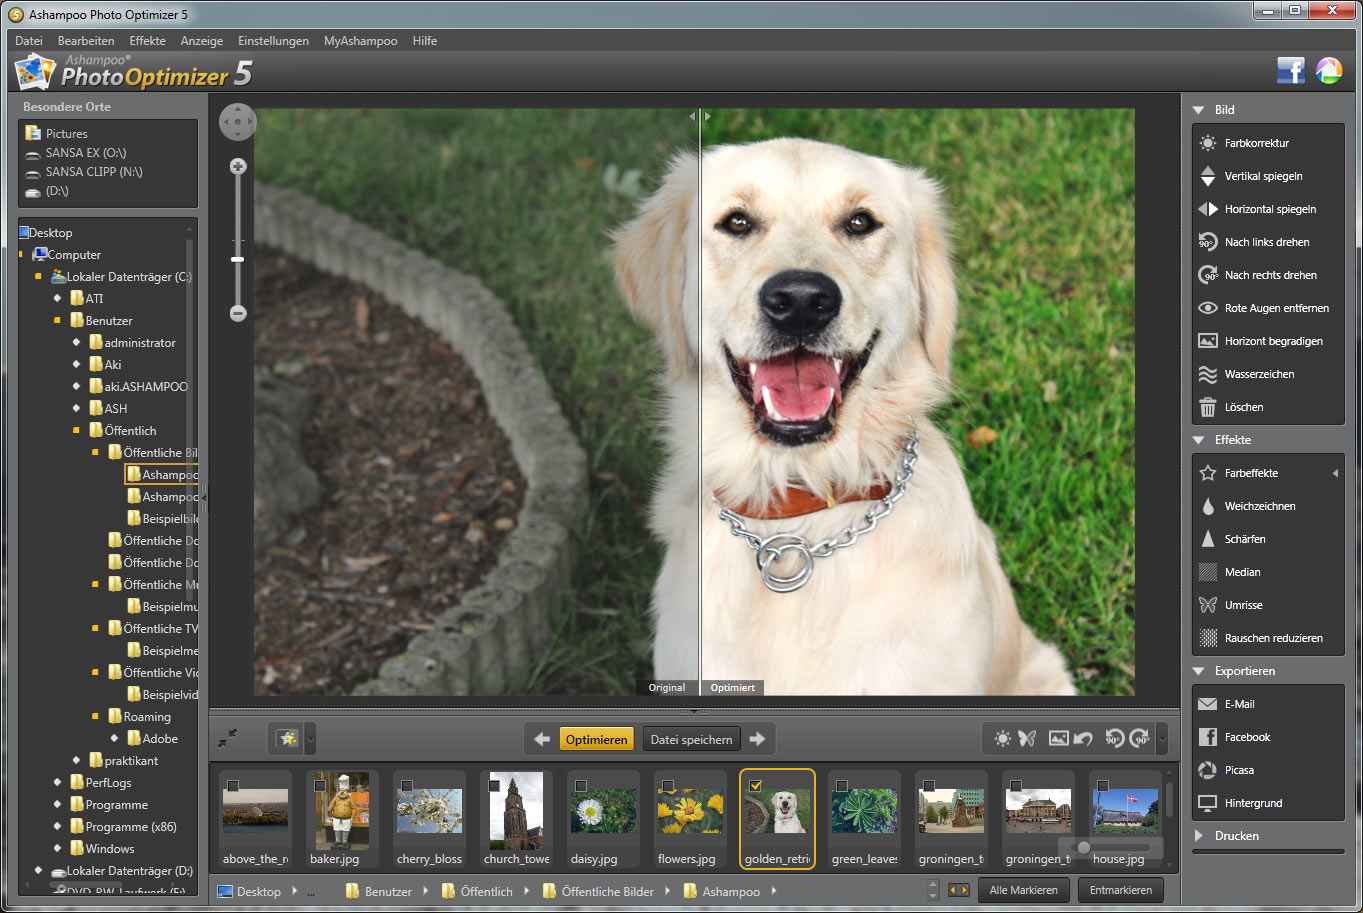 Ashampoo Photo Optimizer 5 5.3.0 Screenshot